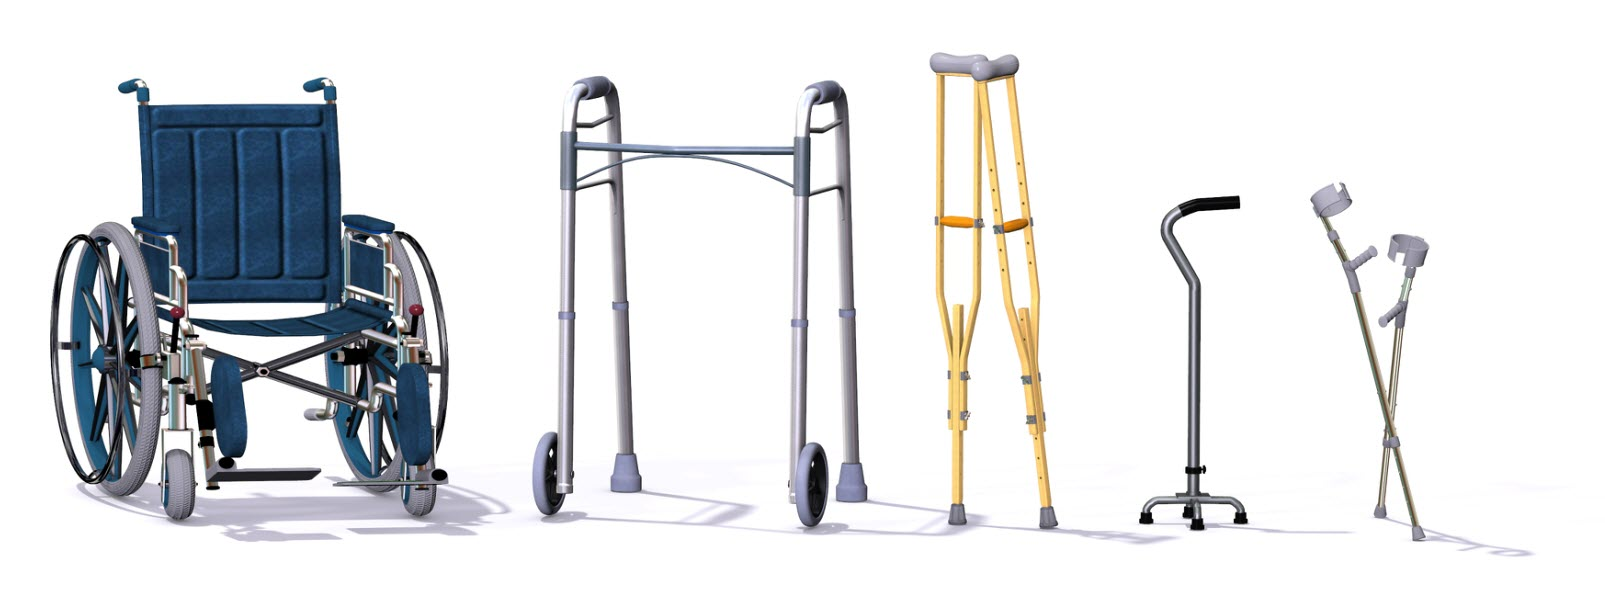 Image showing selection of equipment- wheelchair, walker, cane and crutches.